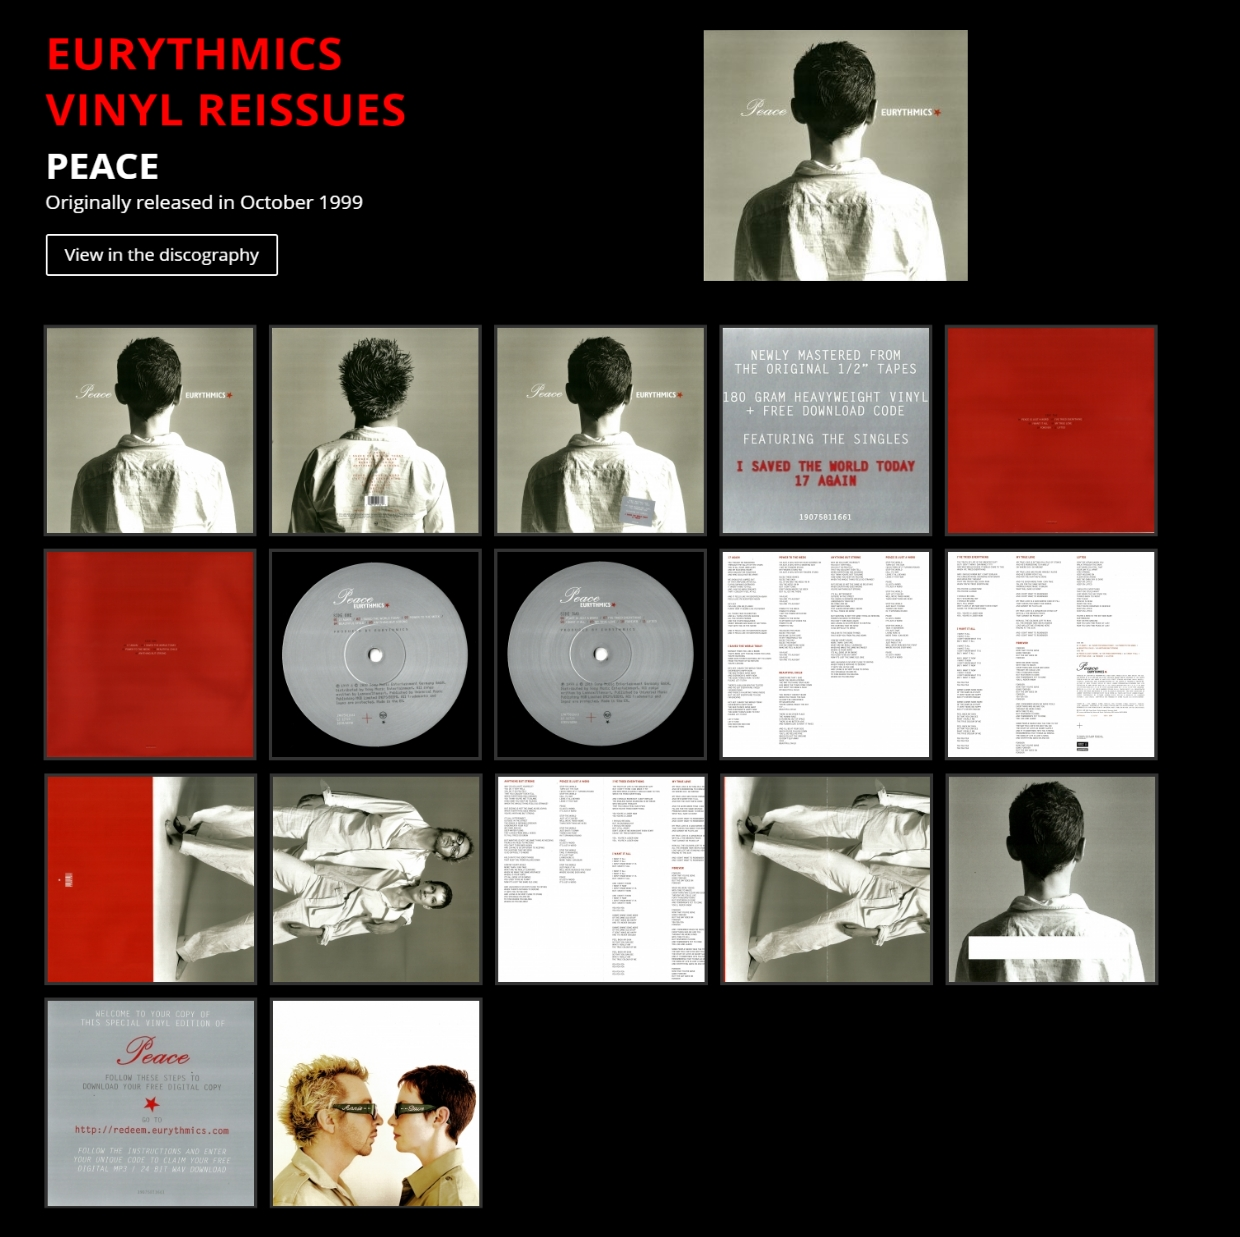 Eurythmics Vinyl Remasters 2018 Peace